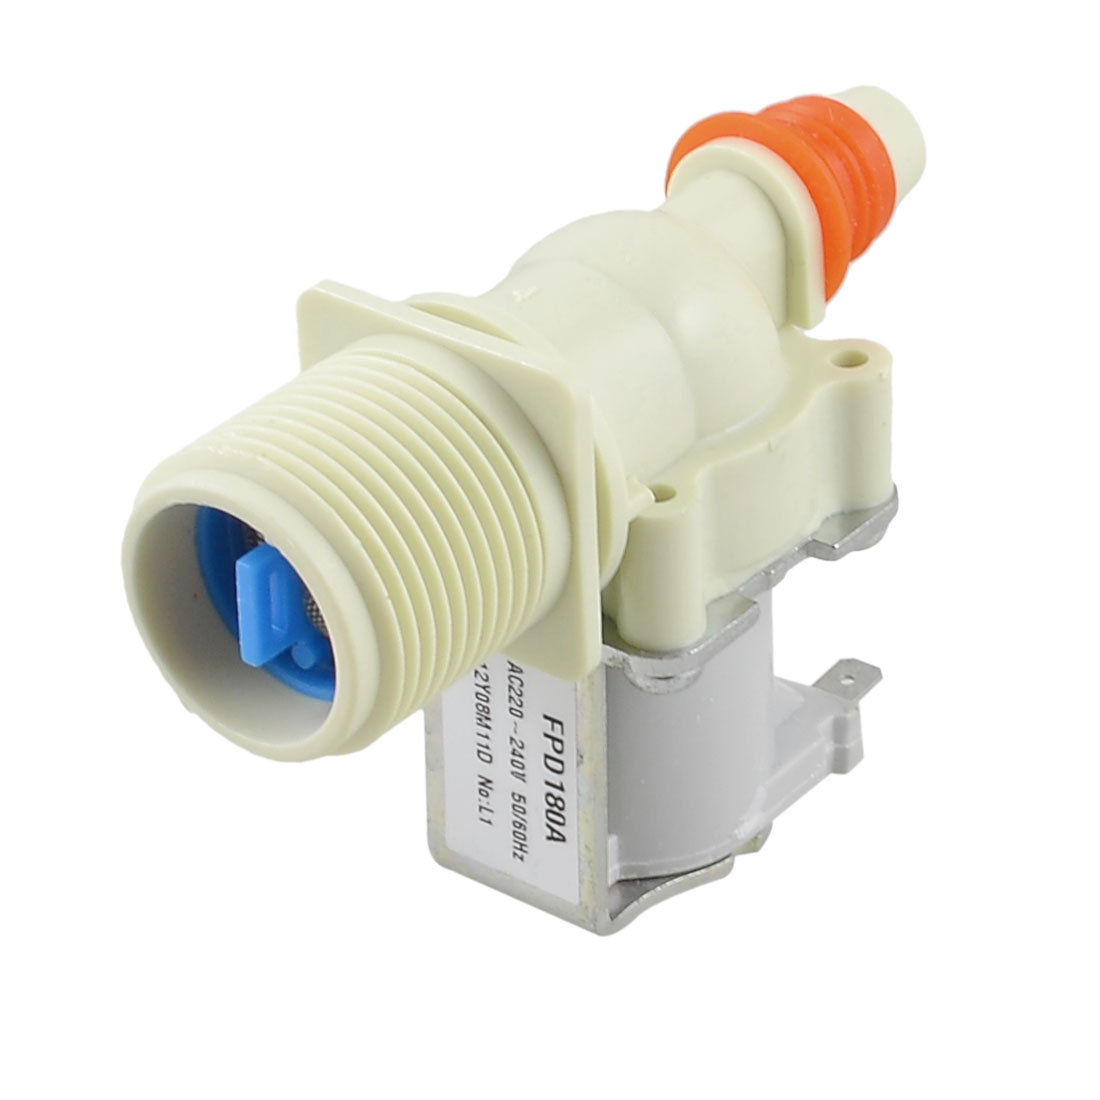 "0.43"" Hose Outlet AC 220-240V 50/60Hz Water Inlet Solenoid Valve for Washing Machine"